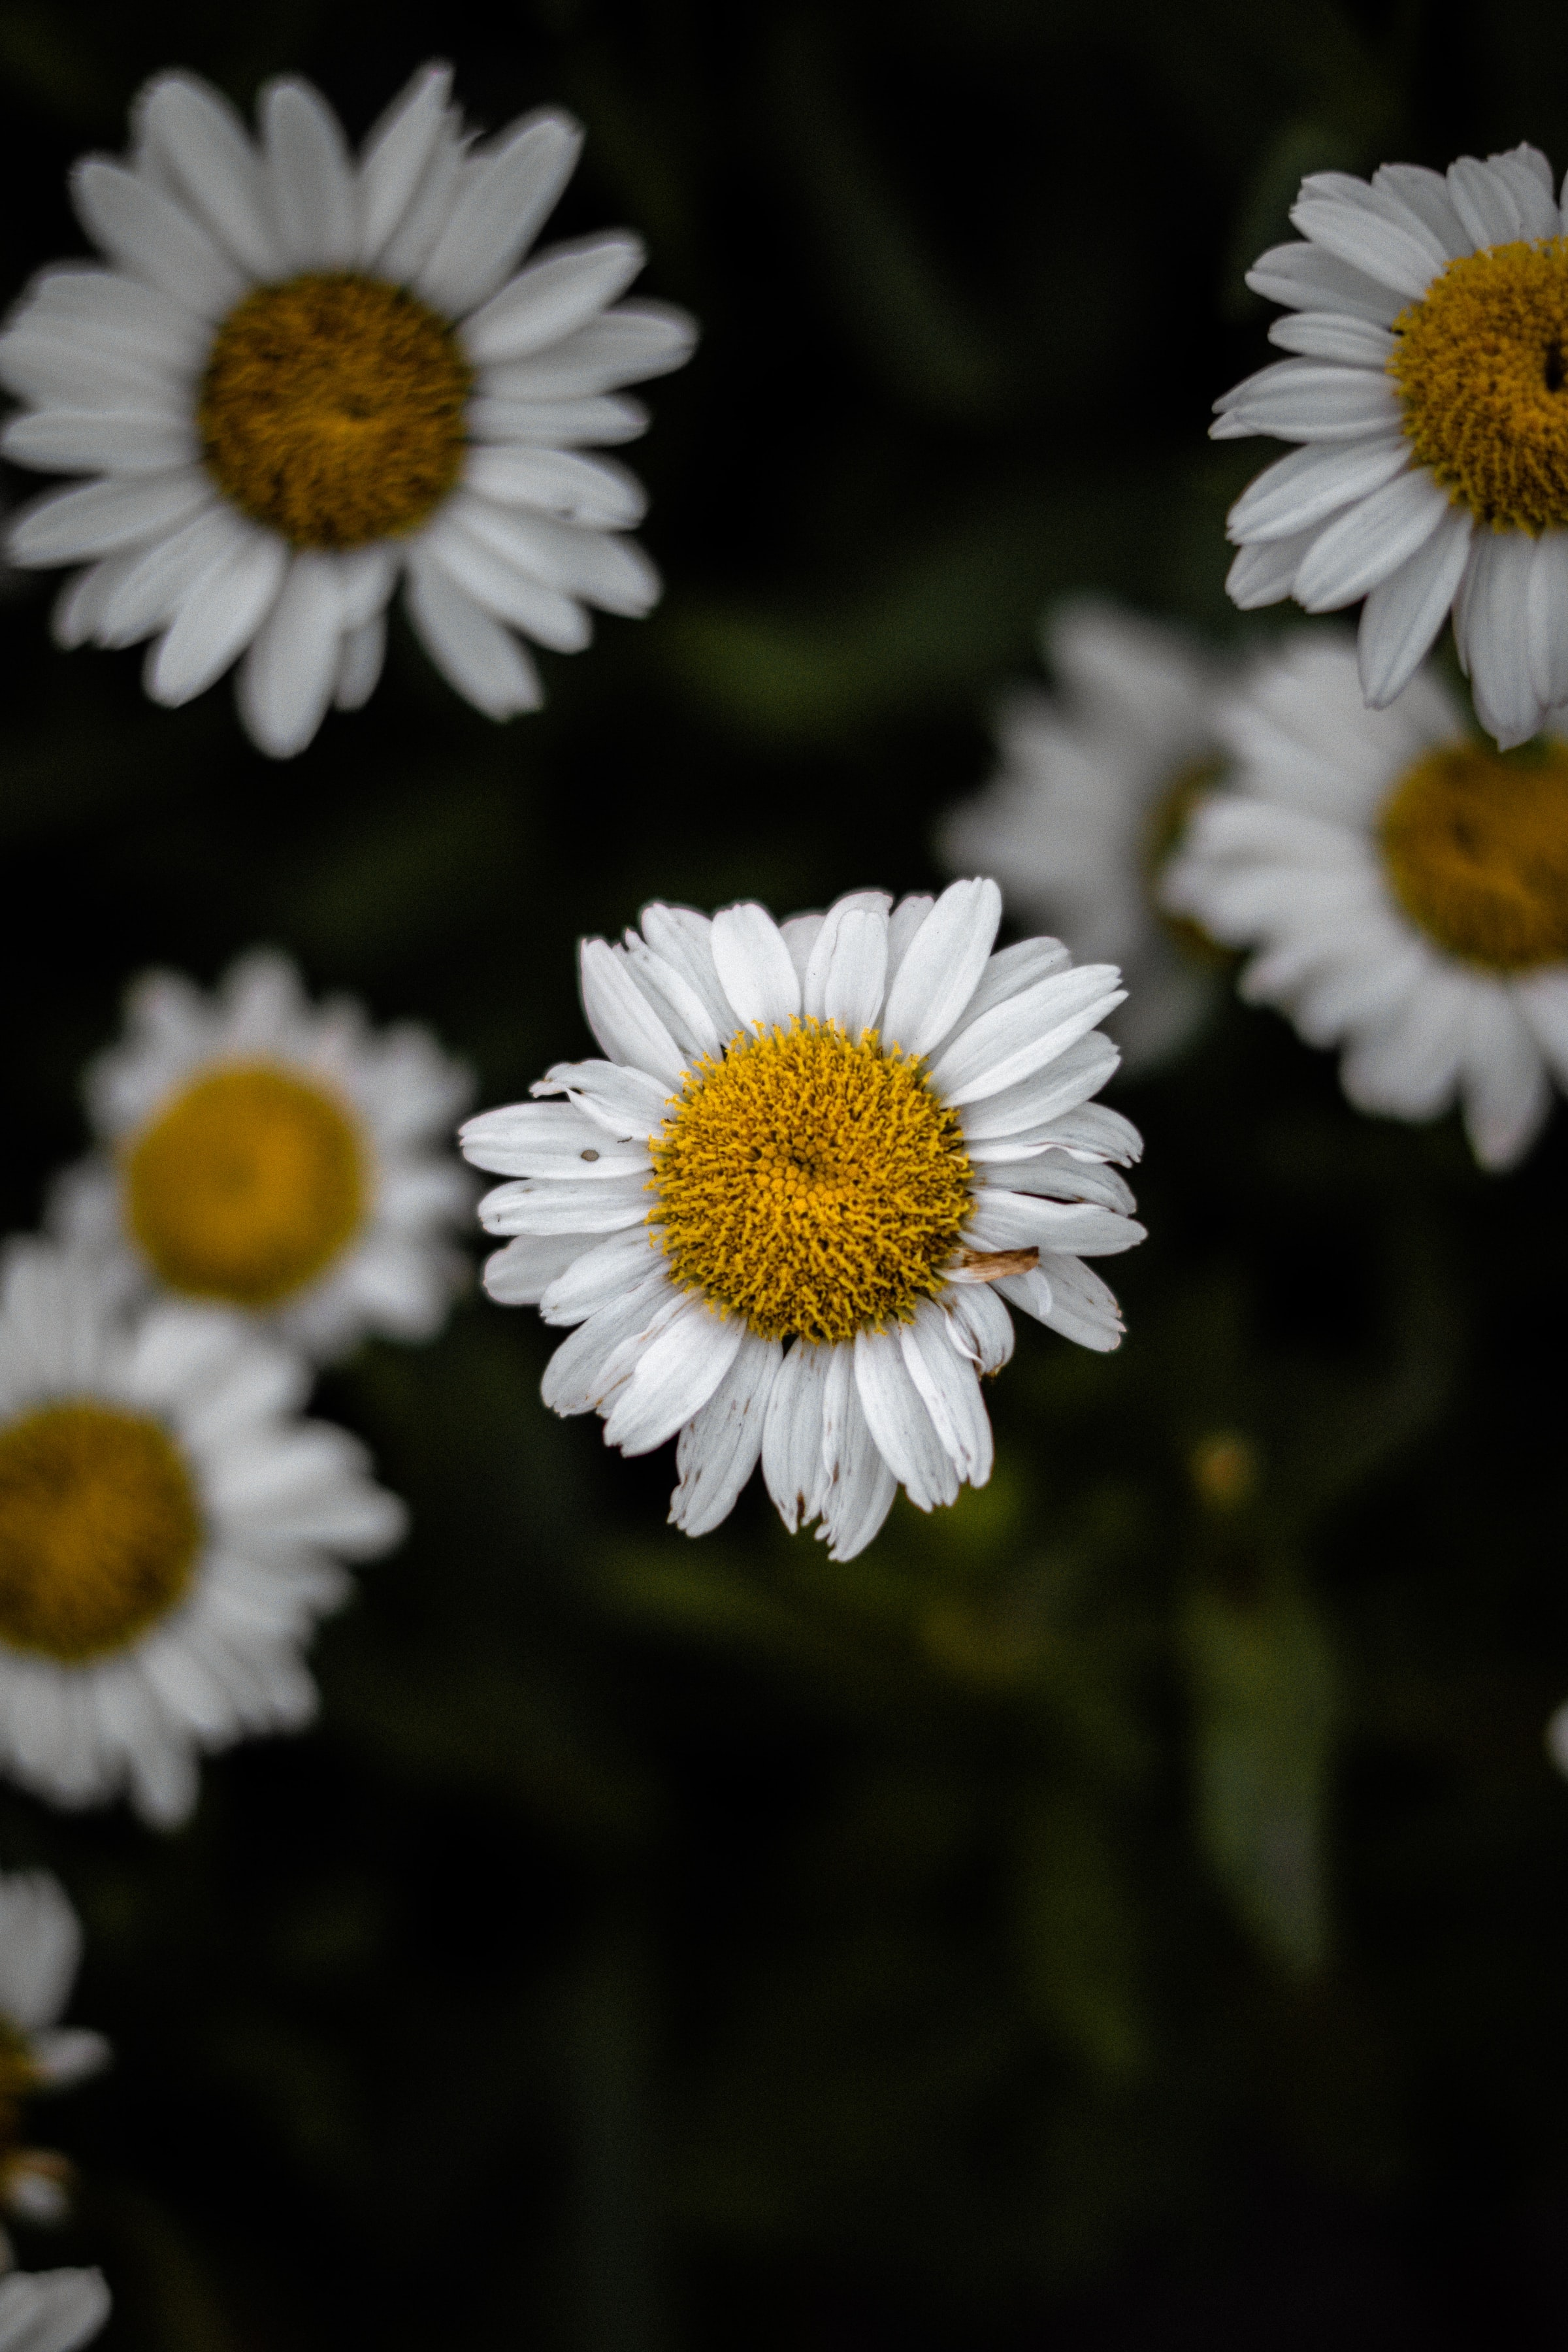 149754 download wallpaper Flowers, Chamomile, Camomile, Wildflowers, Petals, Focus screensavers and pictures for free